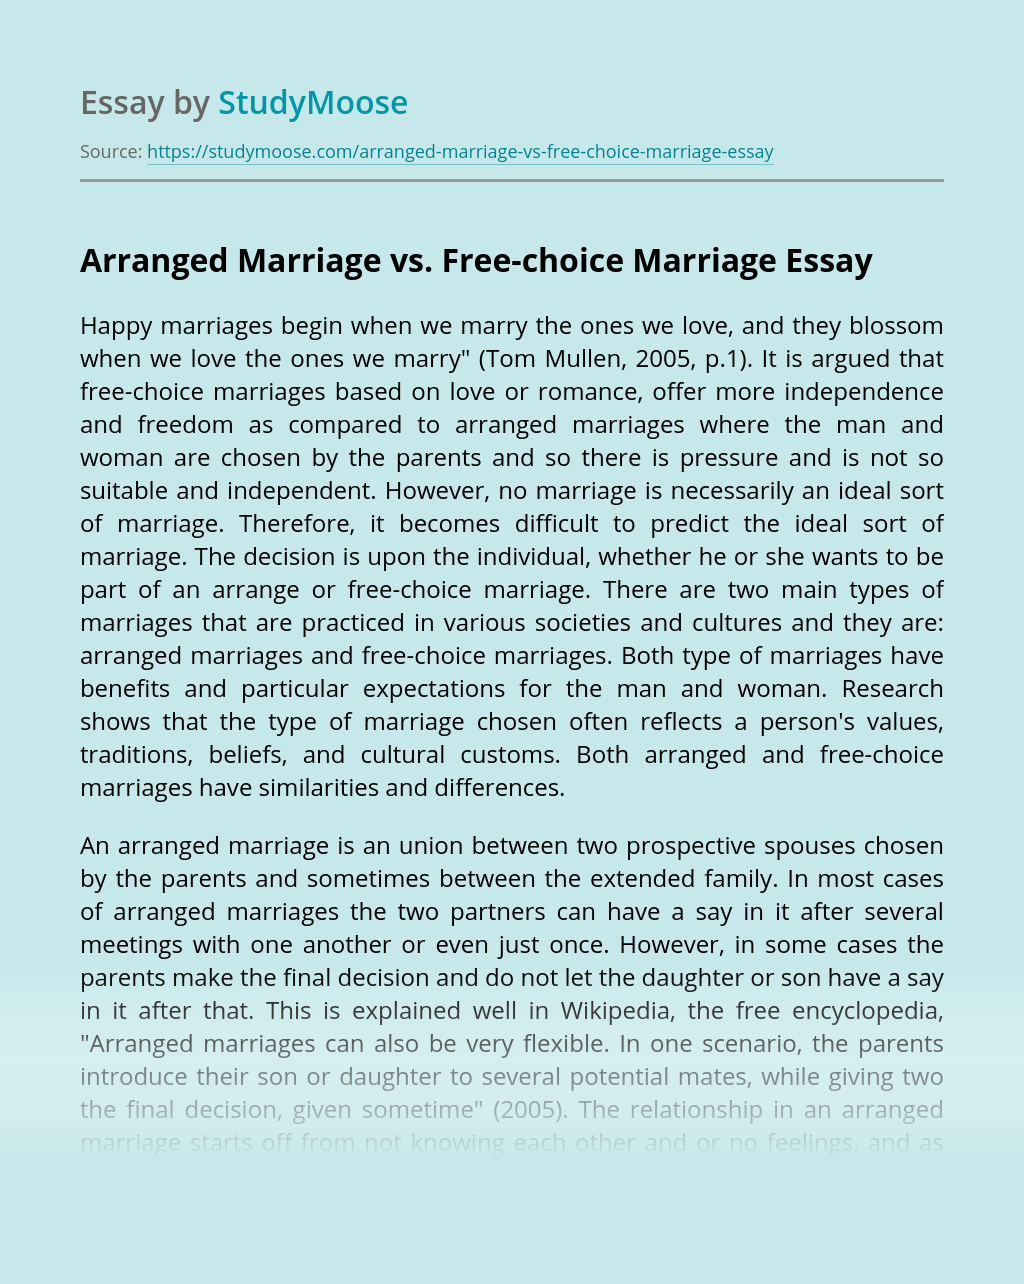 Arranged Marriage vs. Free-choice Marriage